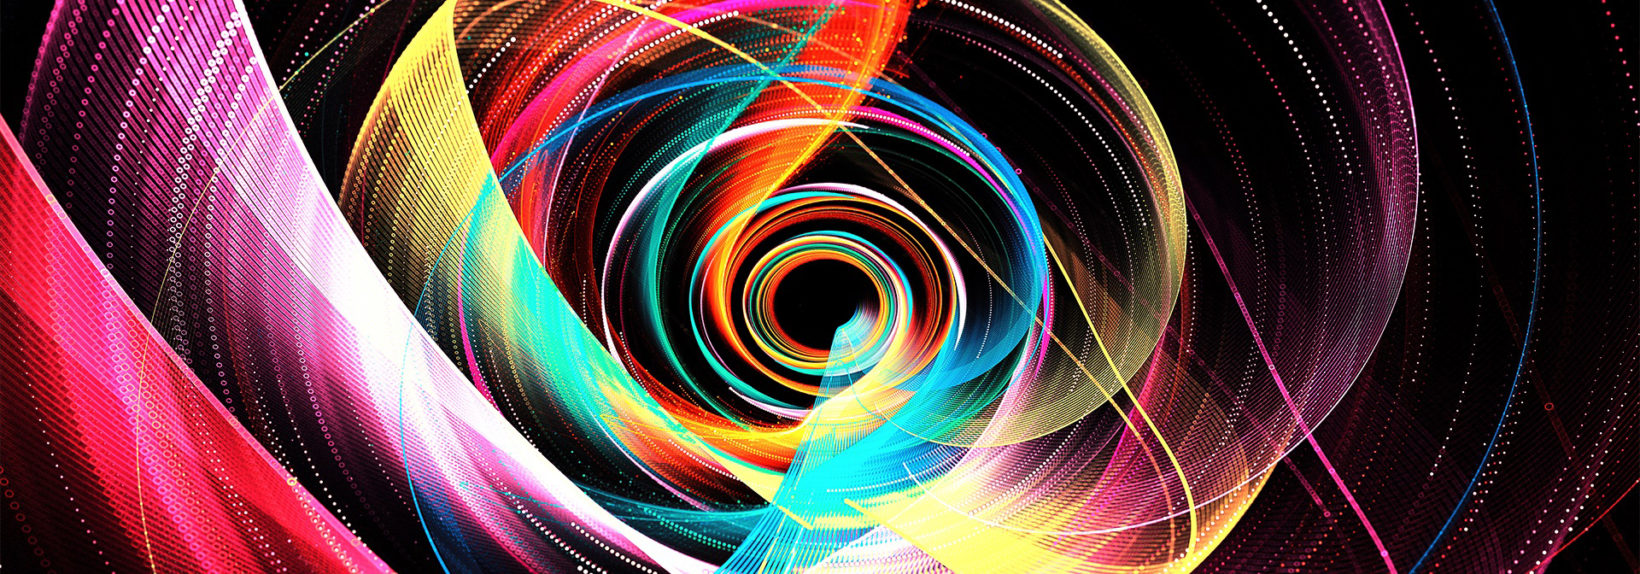 Colorful light moving in circular shapes